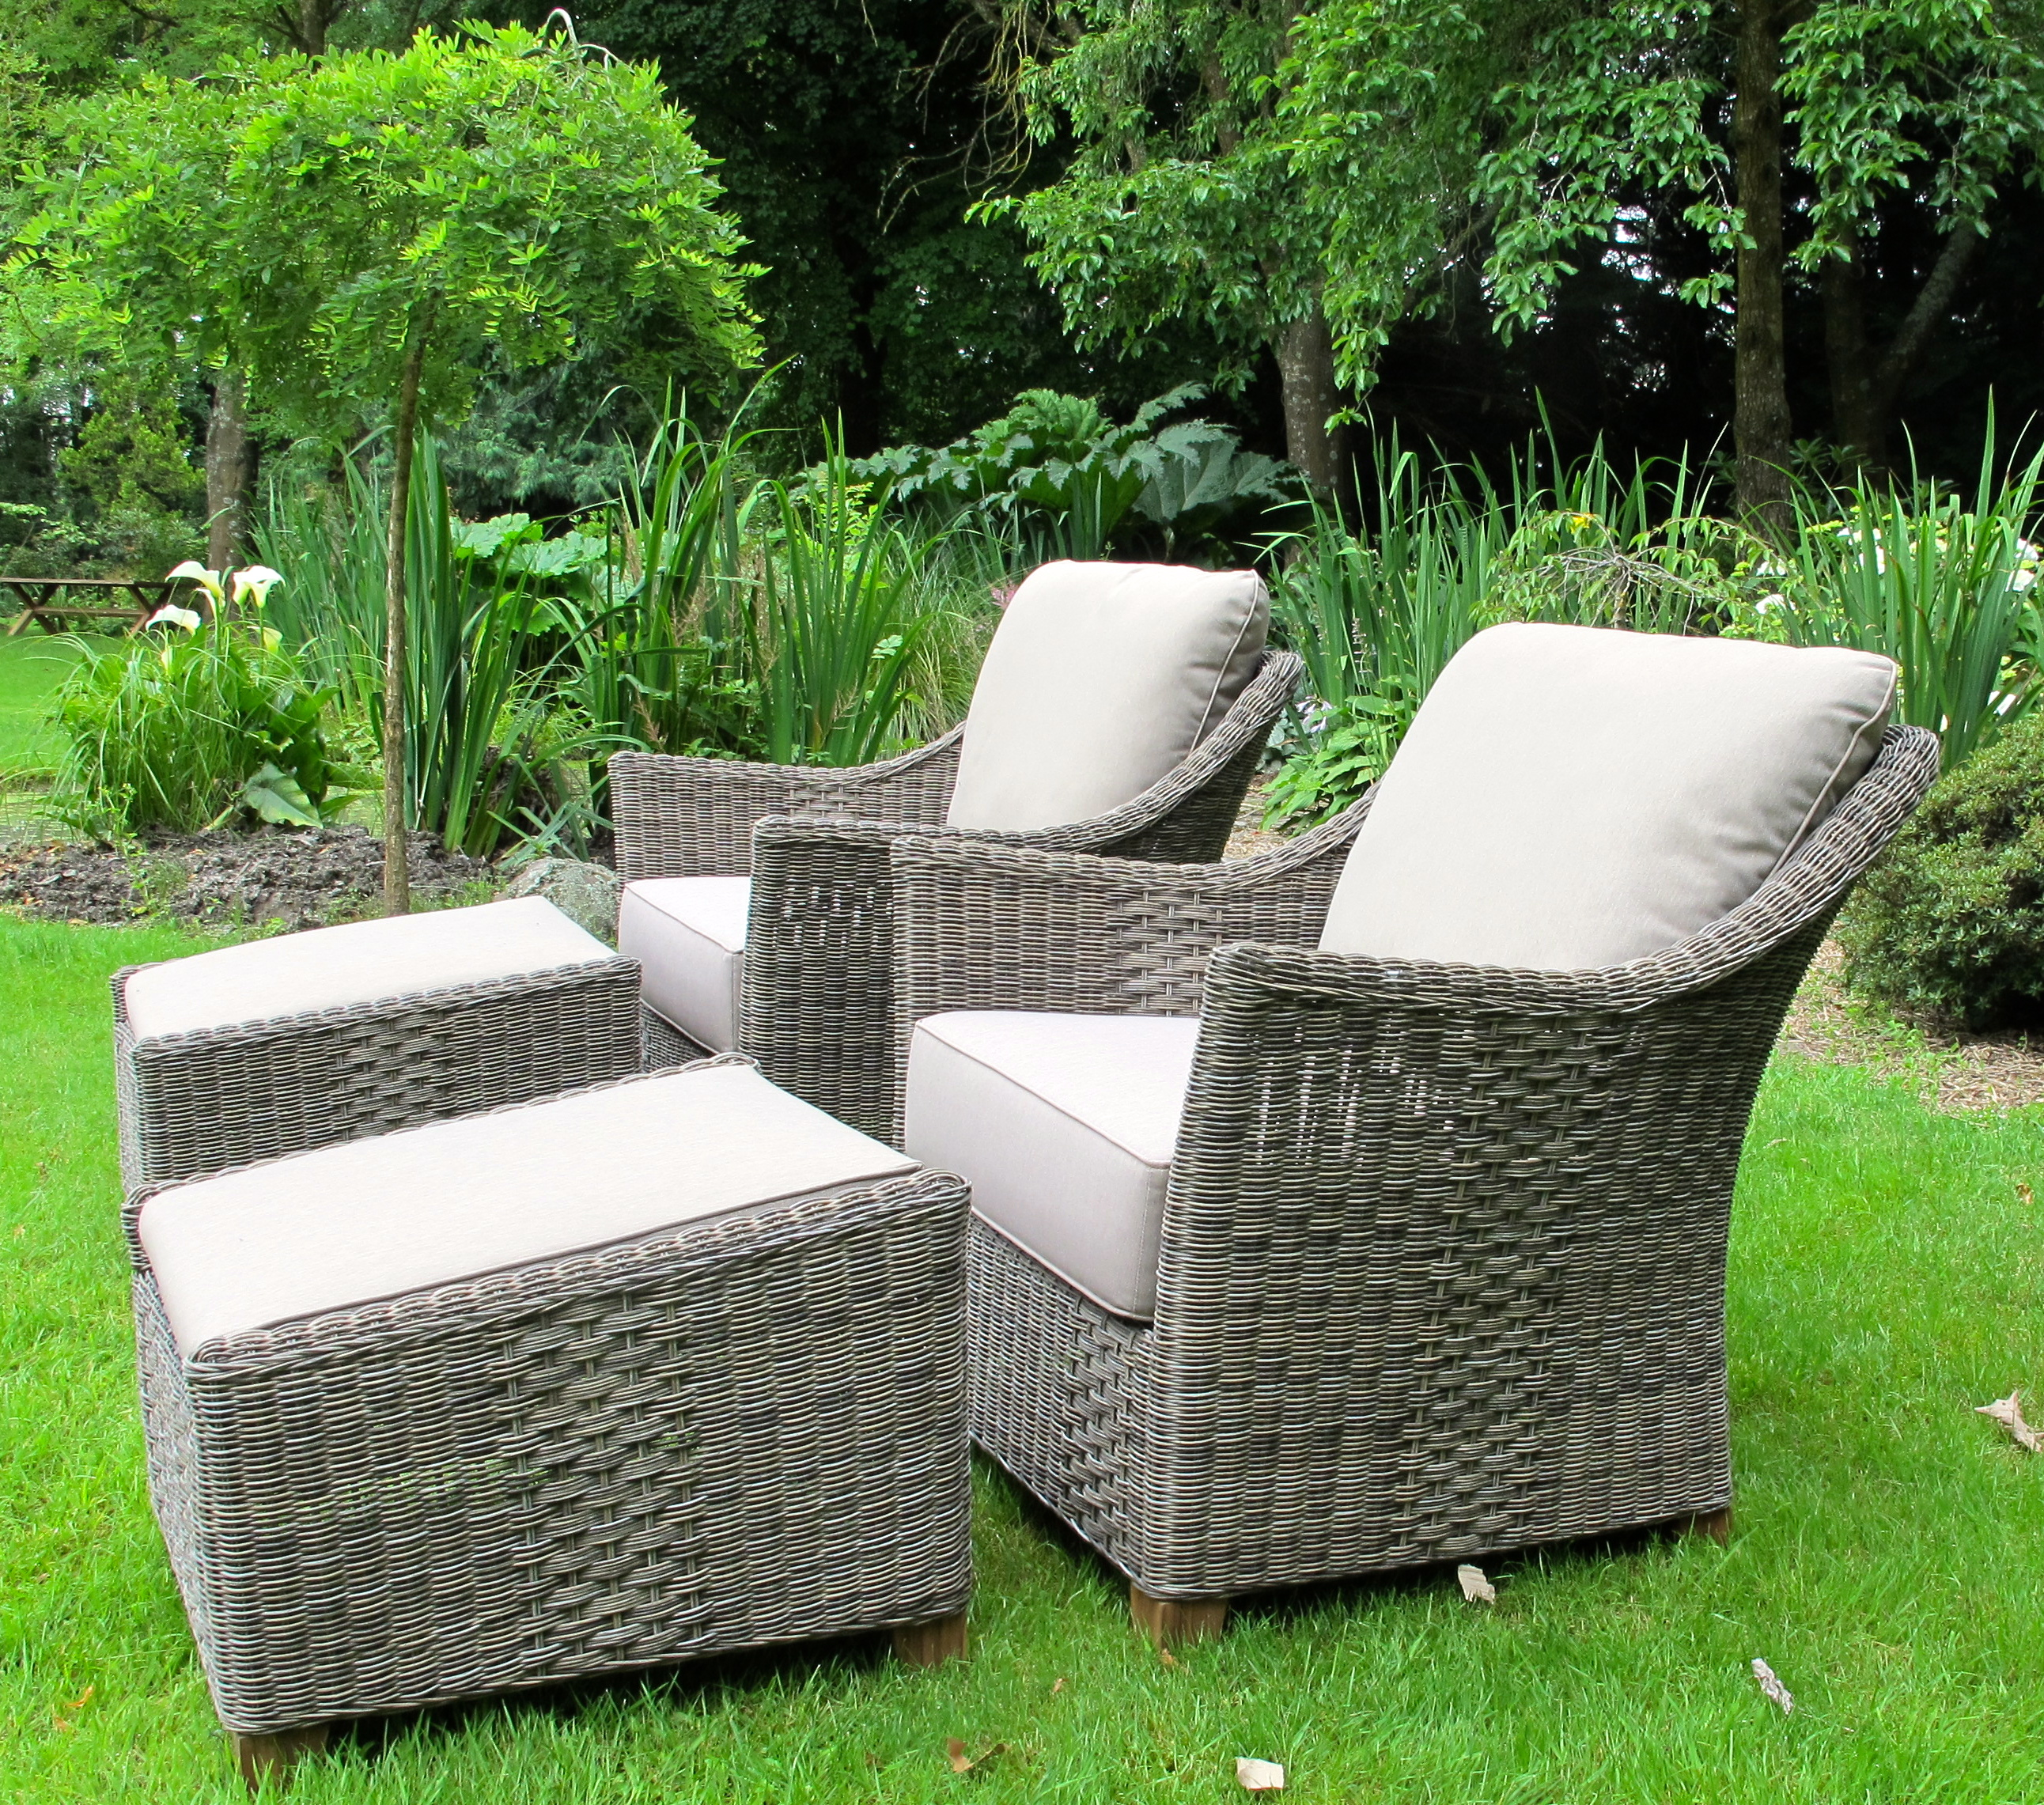 Murchison Chair and Footstool WovenVeranda Outdoor furniture wicker rattan cane wicker teak at